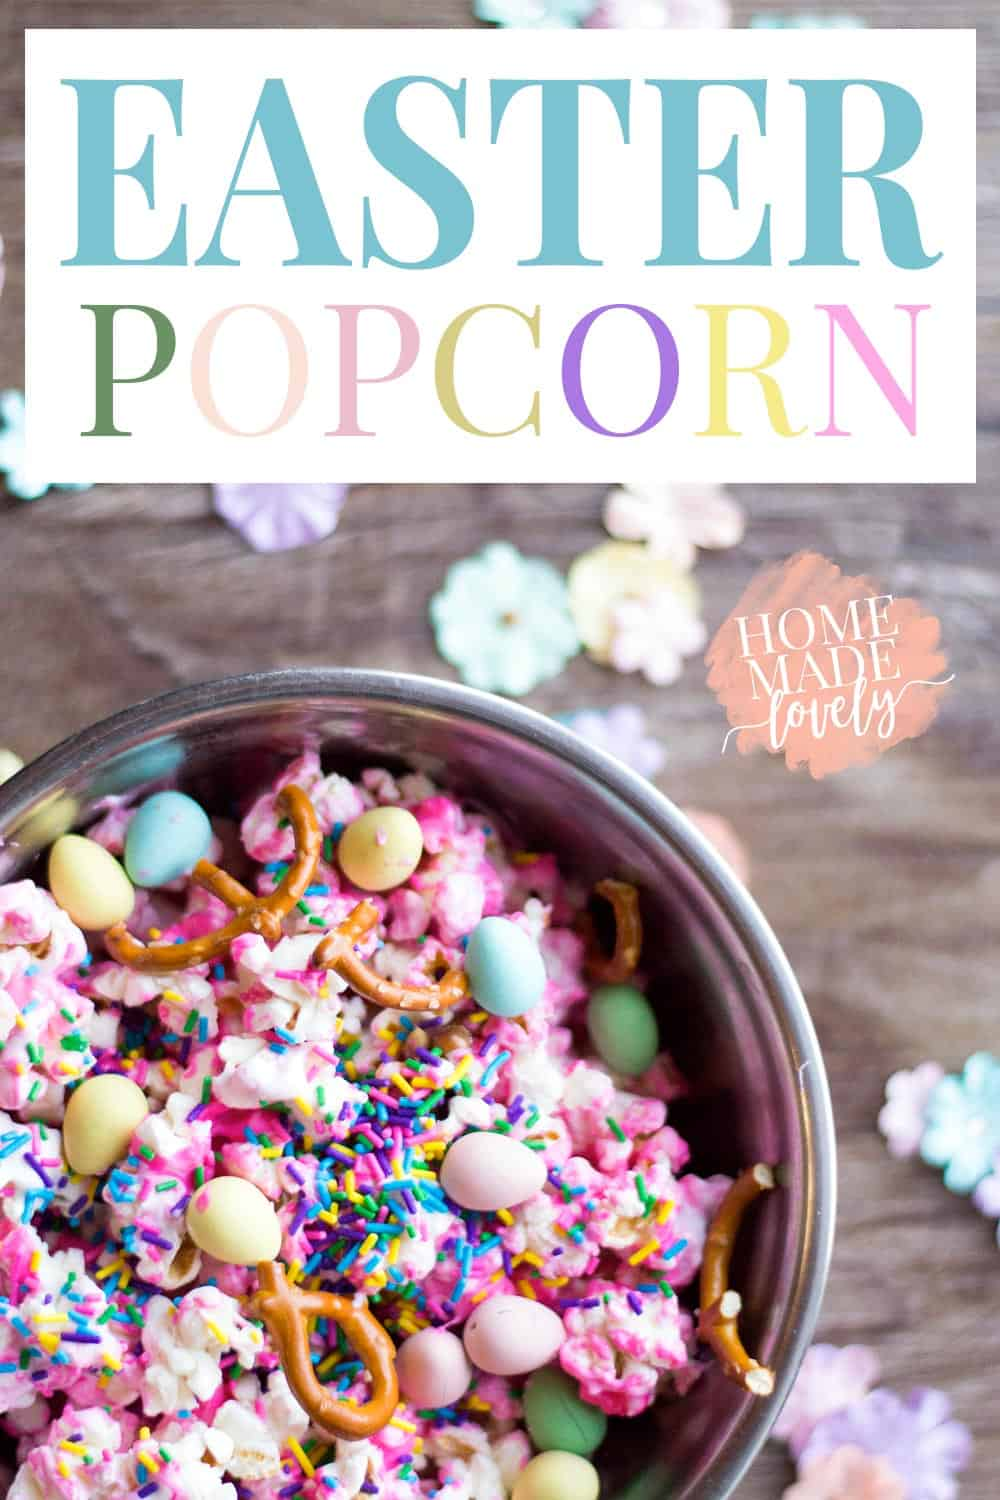 colorful easter popcorn with candy in a metal bowl